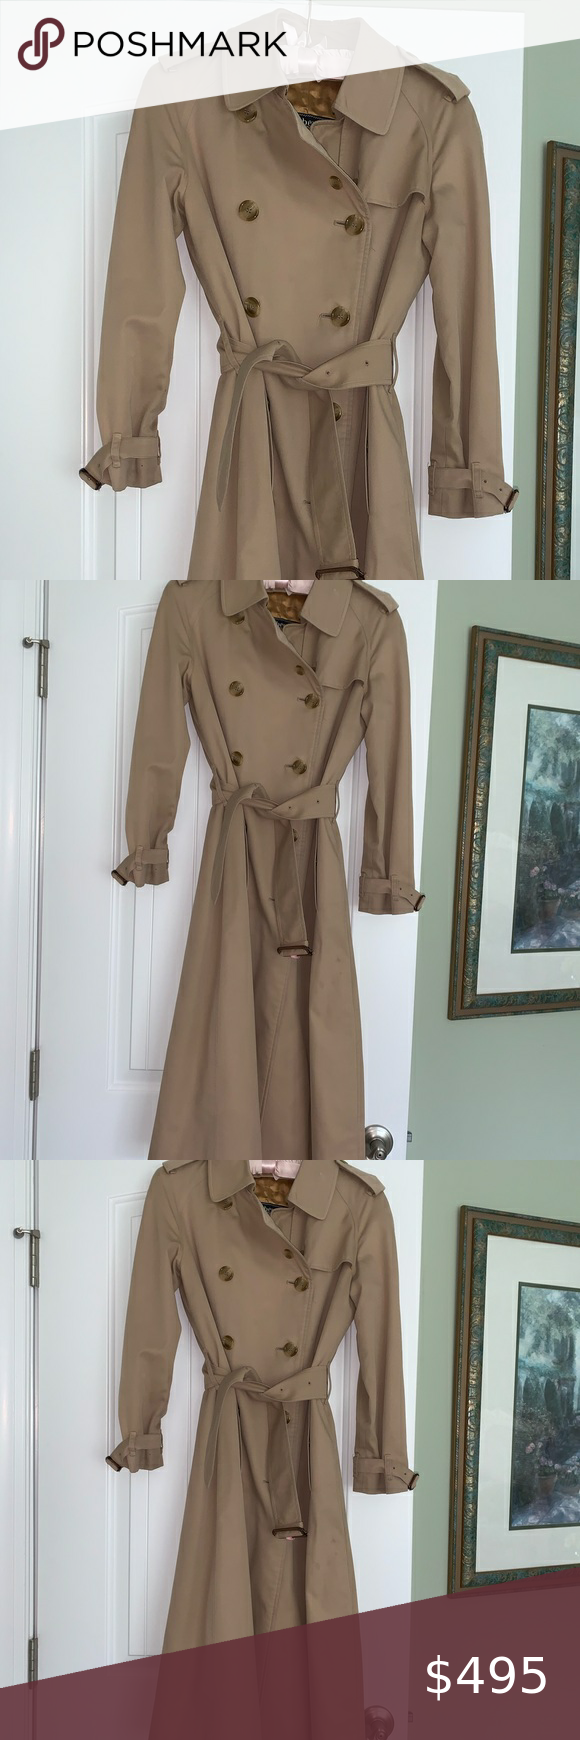 Burberry Trench Vintage In 2020 Burberry Trench Colorful Coat Clothes Design